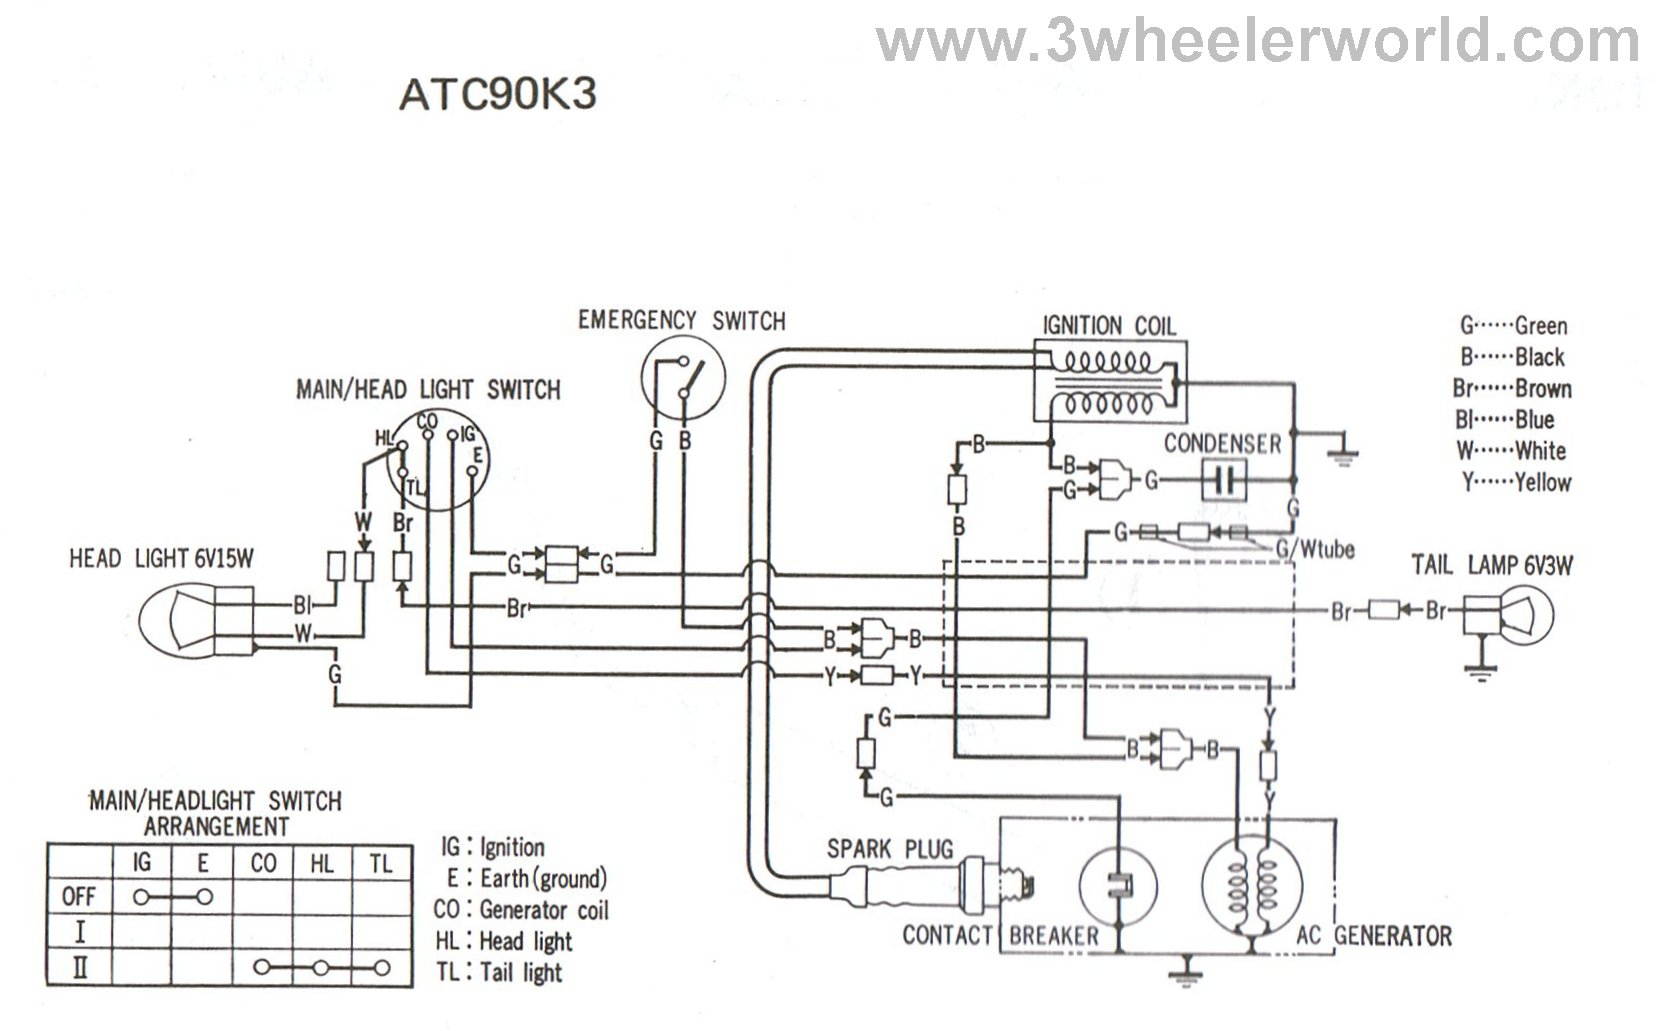 Honda 2000 Atv Winch Wiring Diagram Library Rancher 420 Fuel Filter Atc90 Schematics Rh Thyl Co Uk 2006 Trx 90